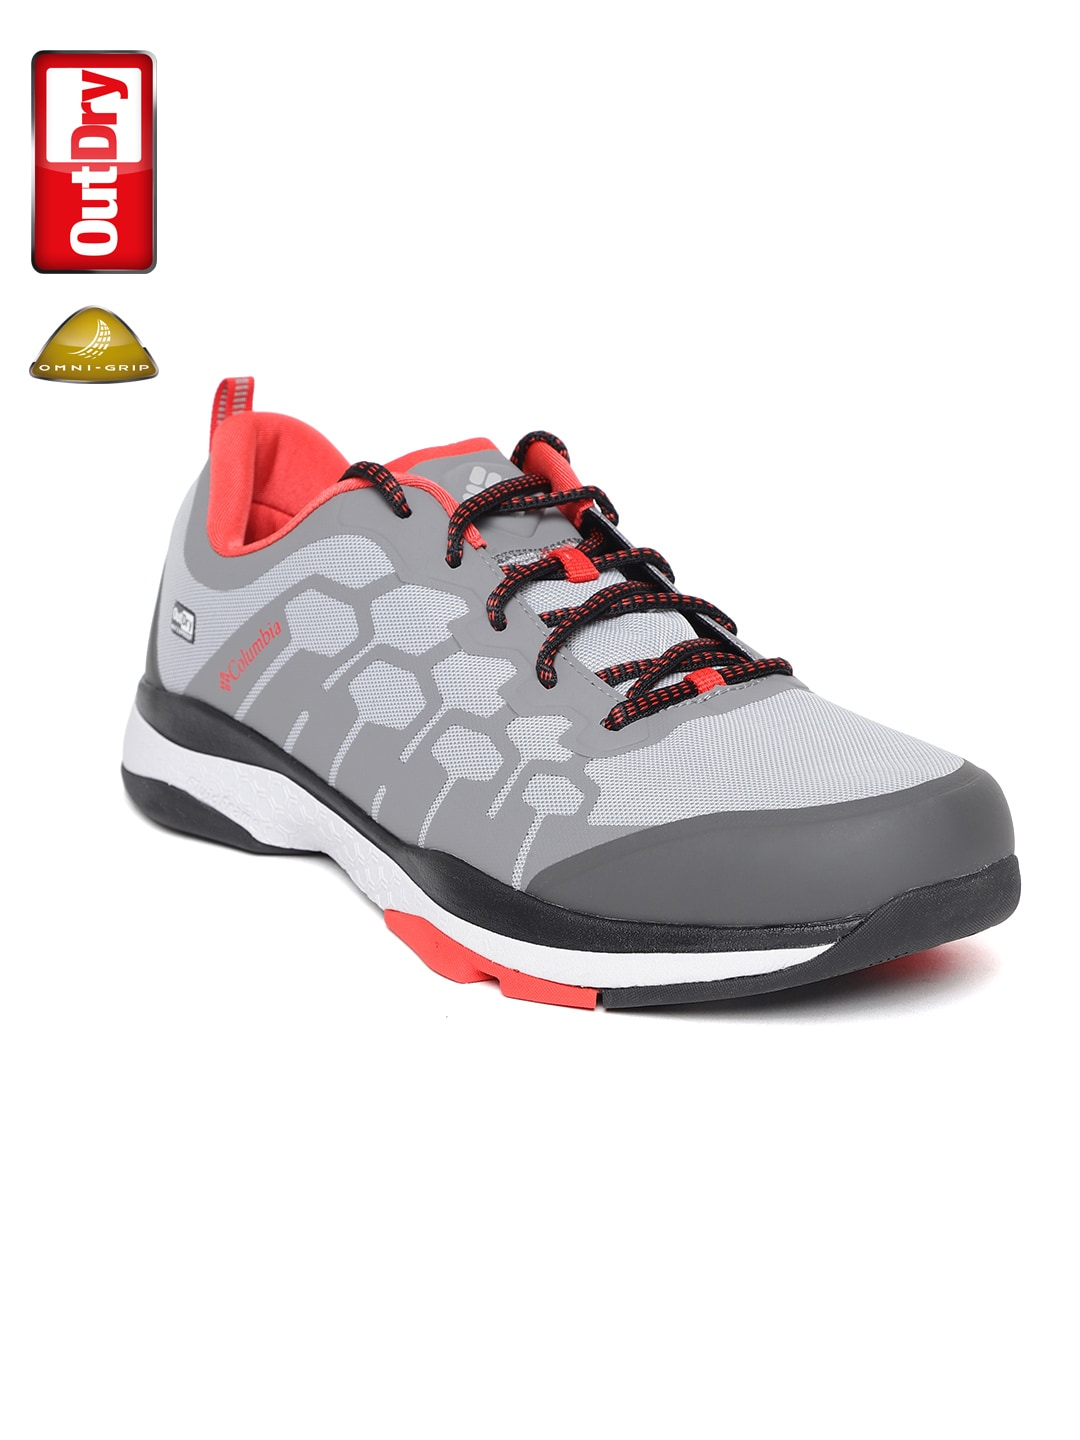 b78513f3c16 Sports Shoes - Buy Sport Shoes For Men   Women Online